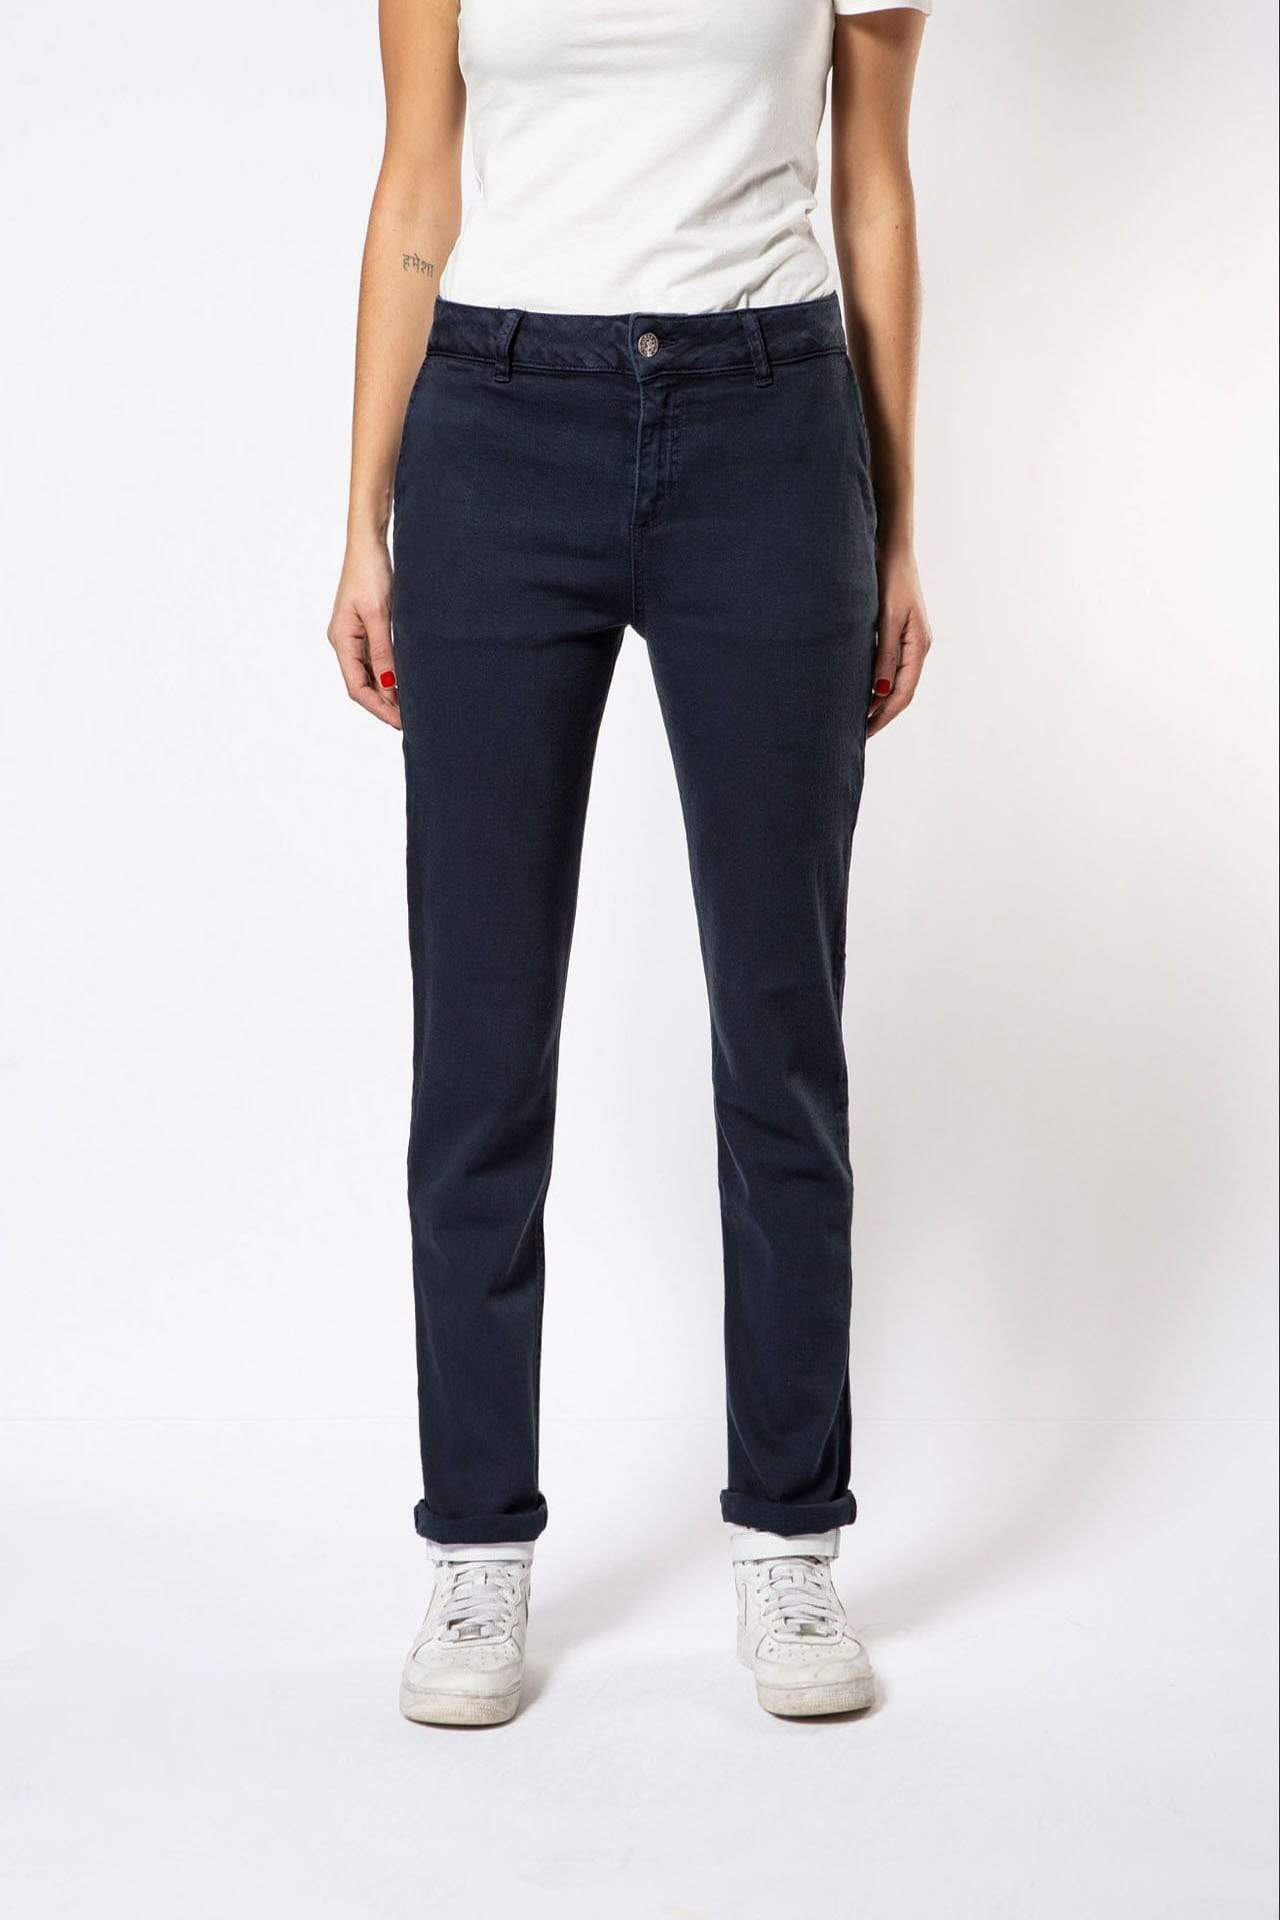 Par.co DENIM Woman Primula Straight Jeans sustainable fashion ethical fashion